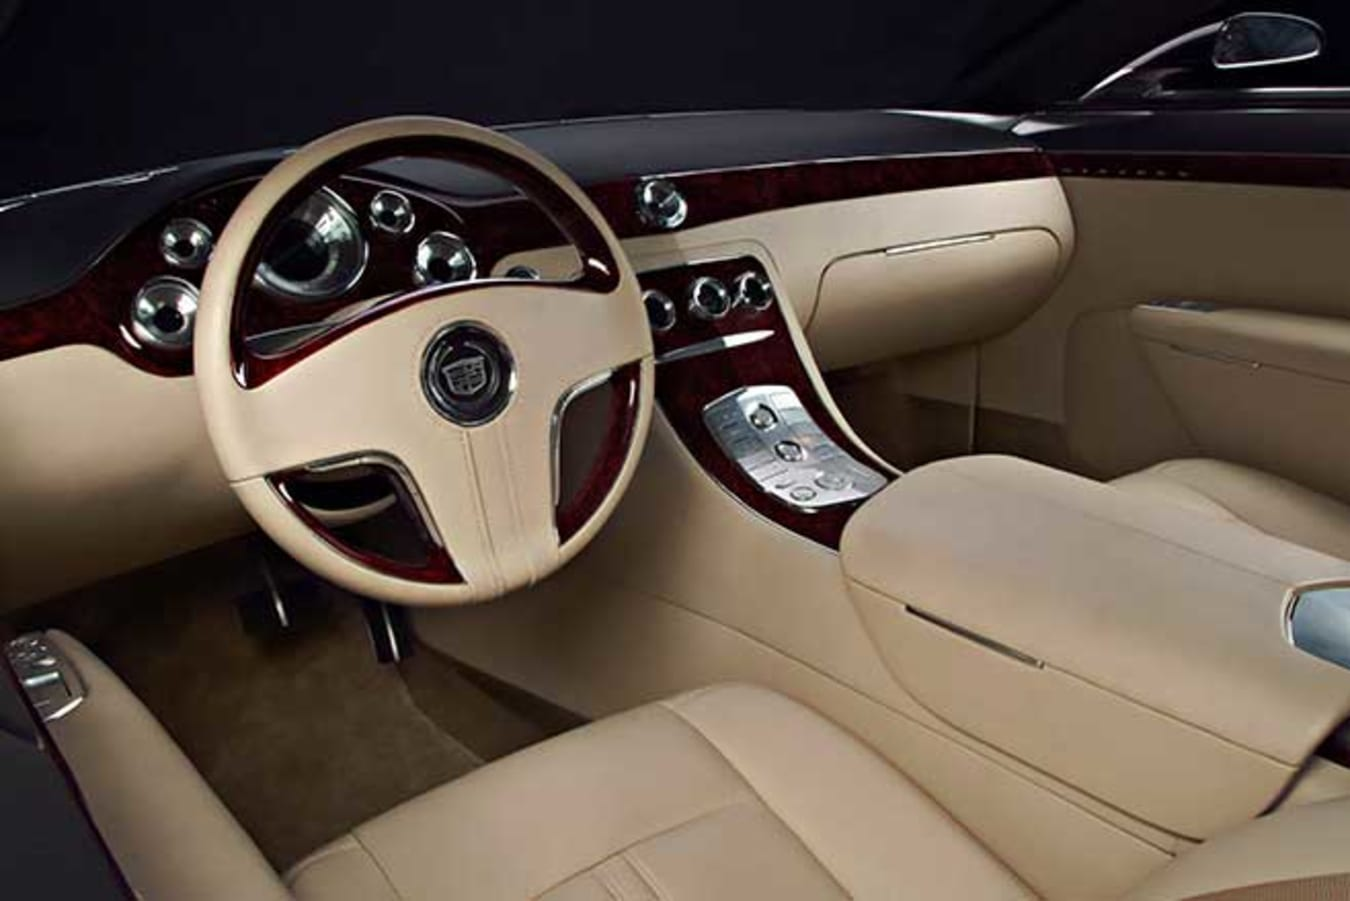 The Cadillac interior was covered in leather, wood and aluminium.